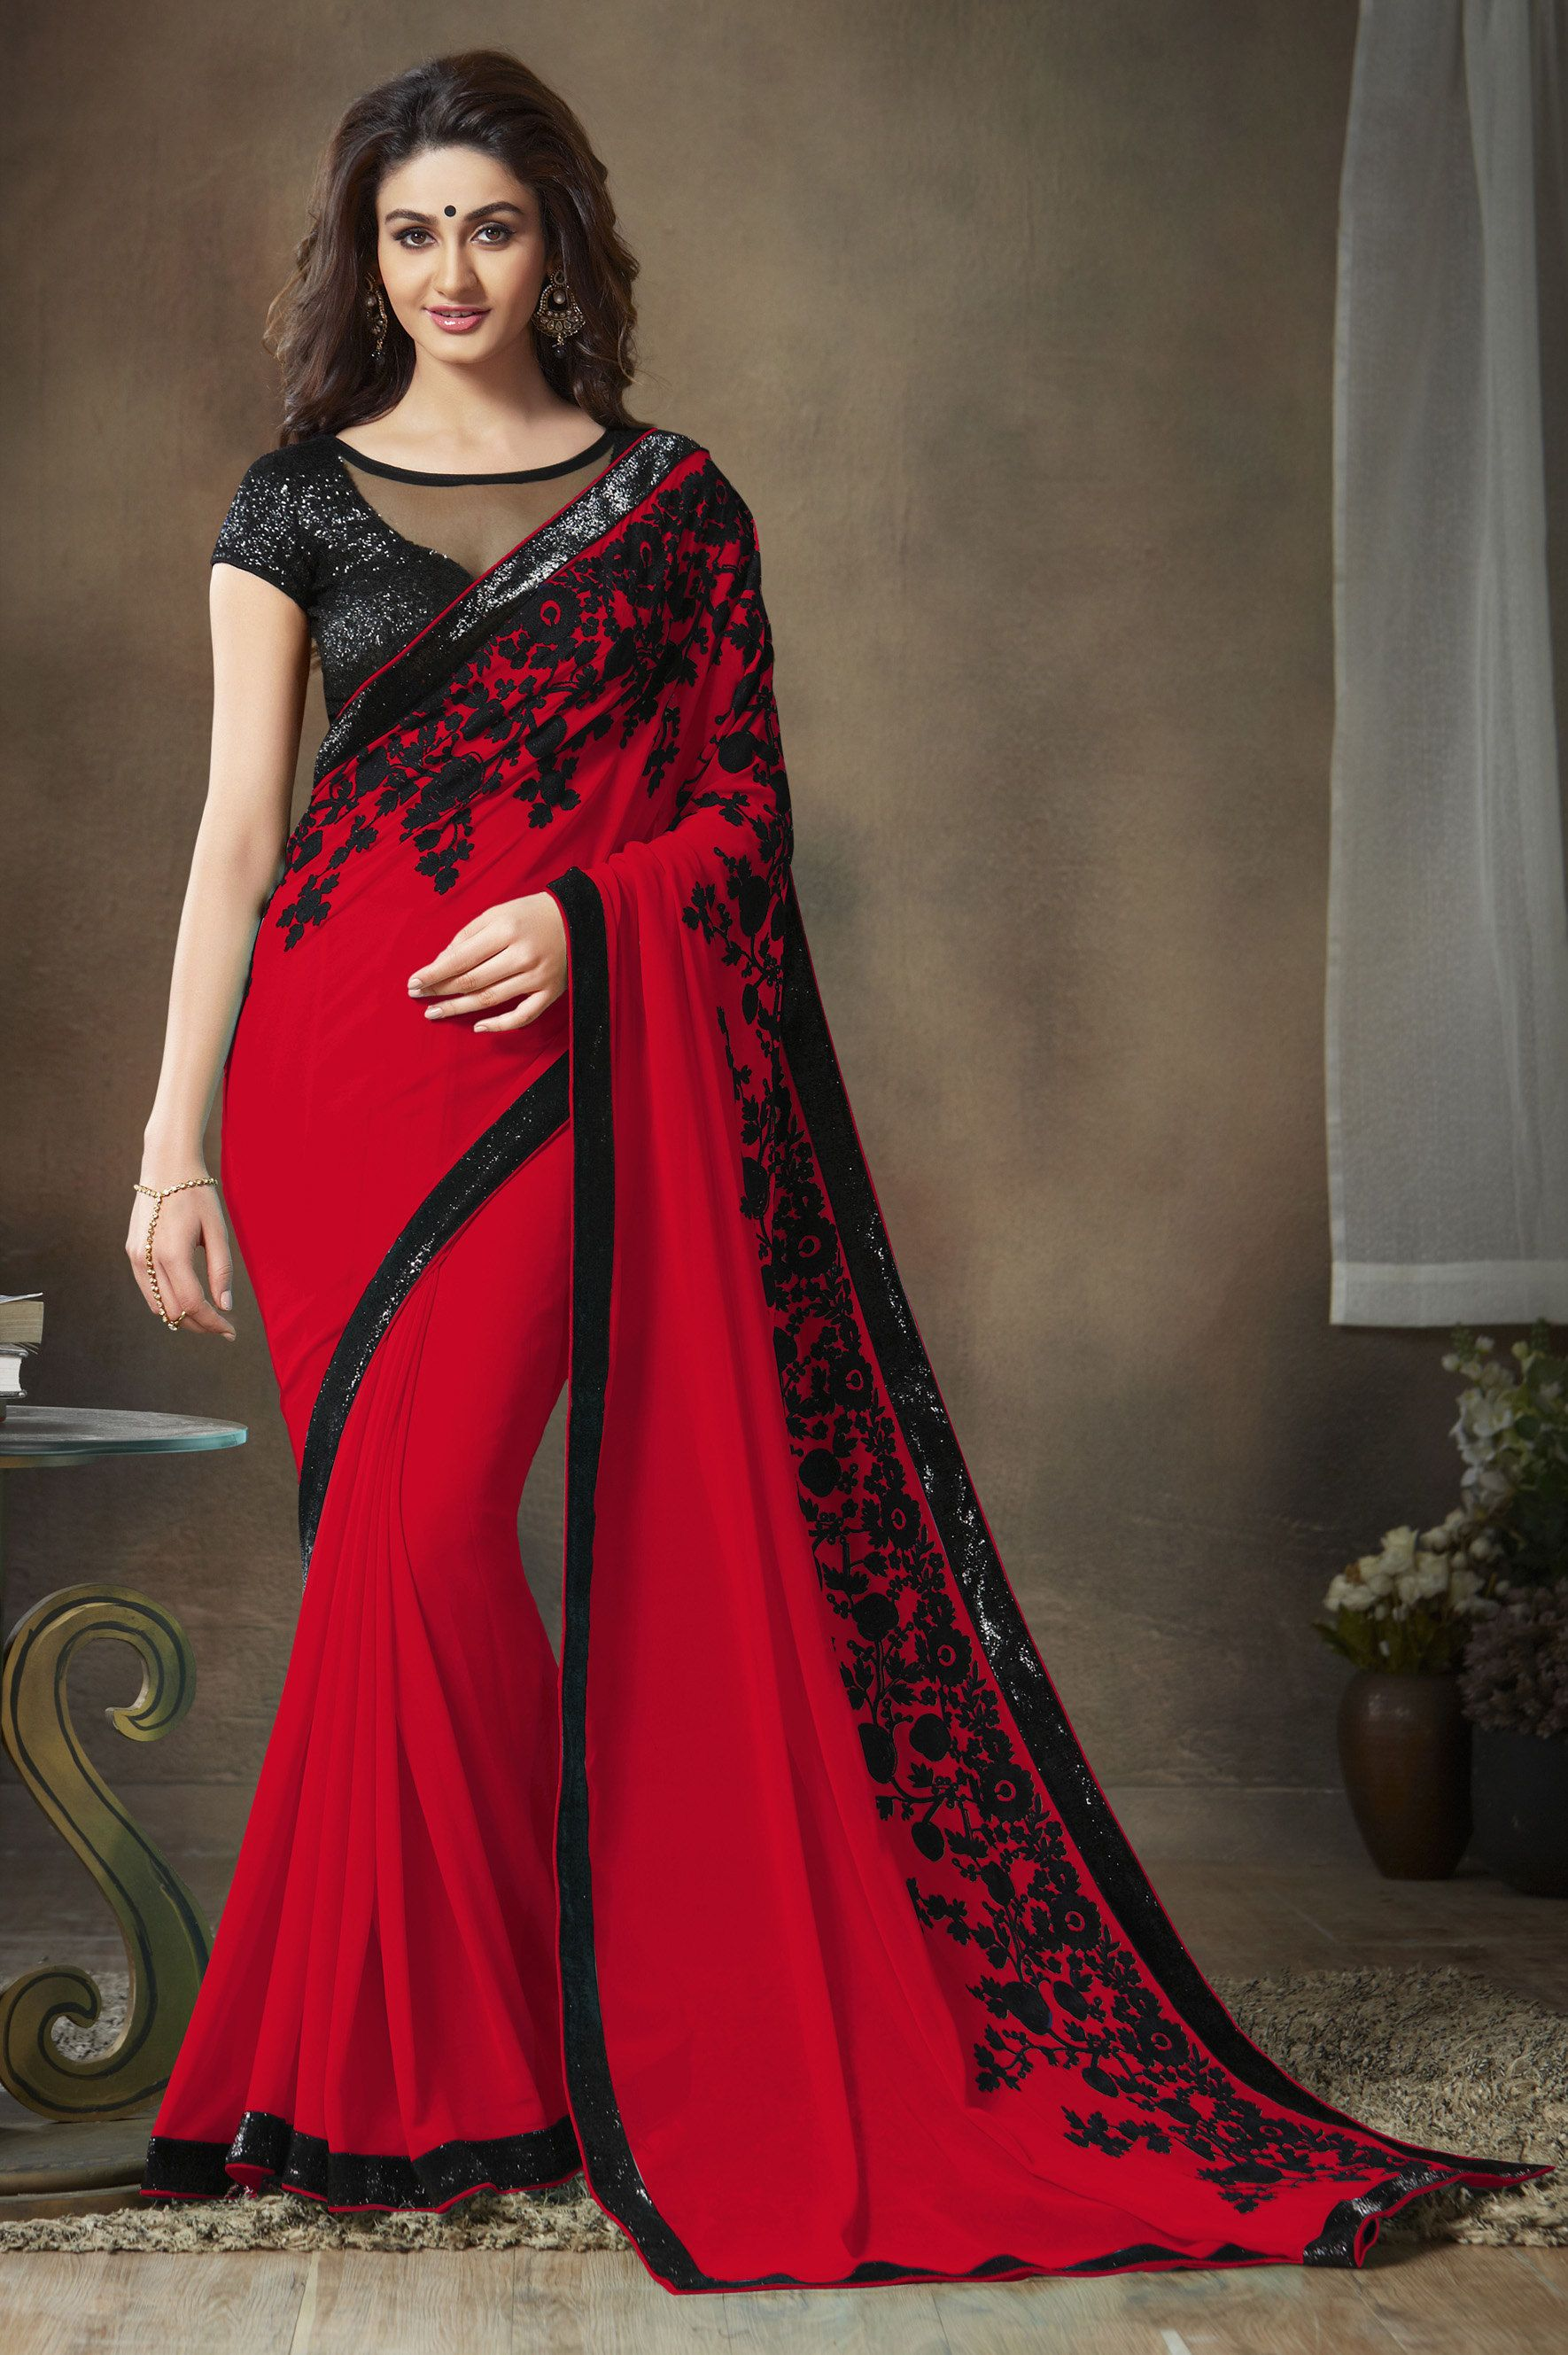 2958c24e43480 red saree with black floral border.